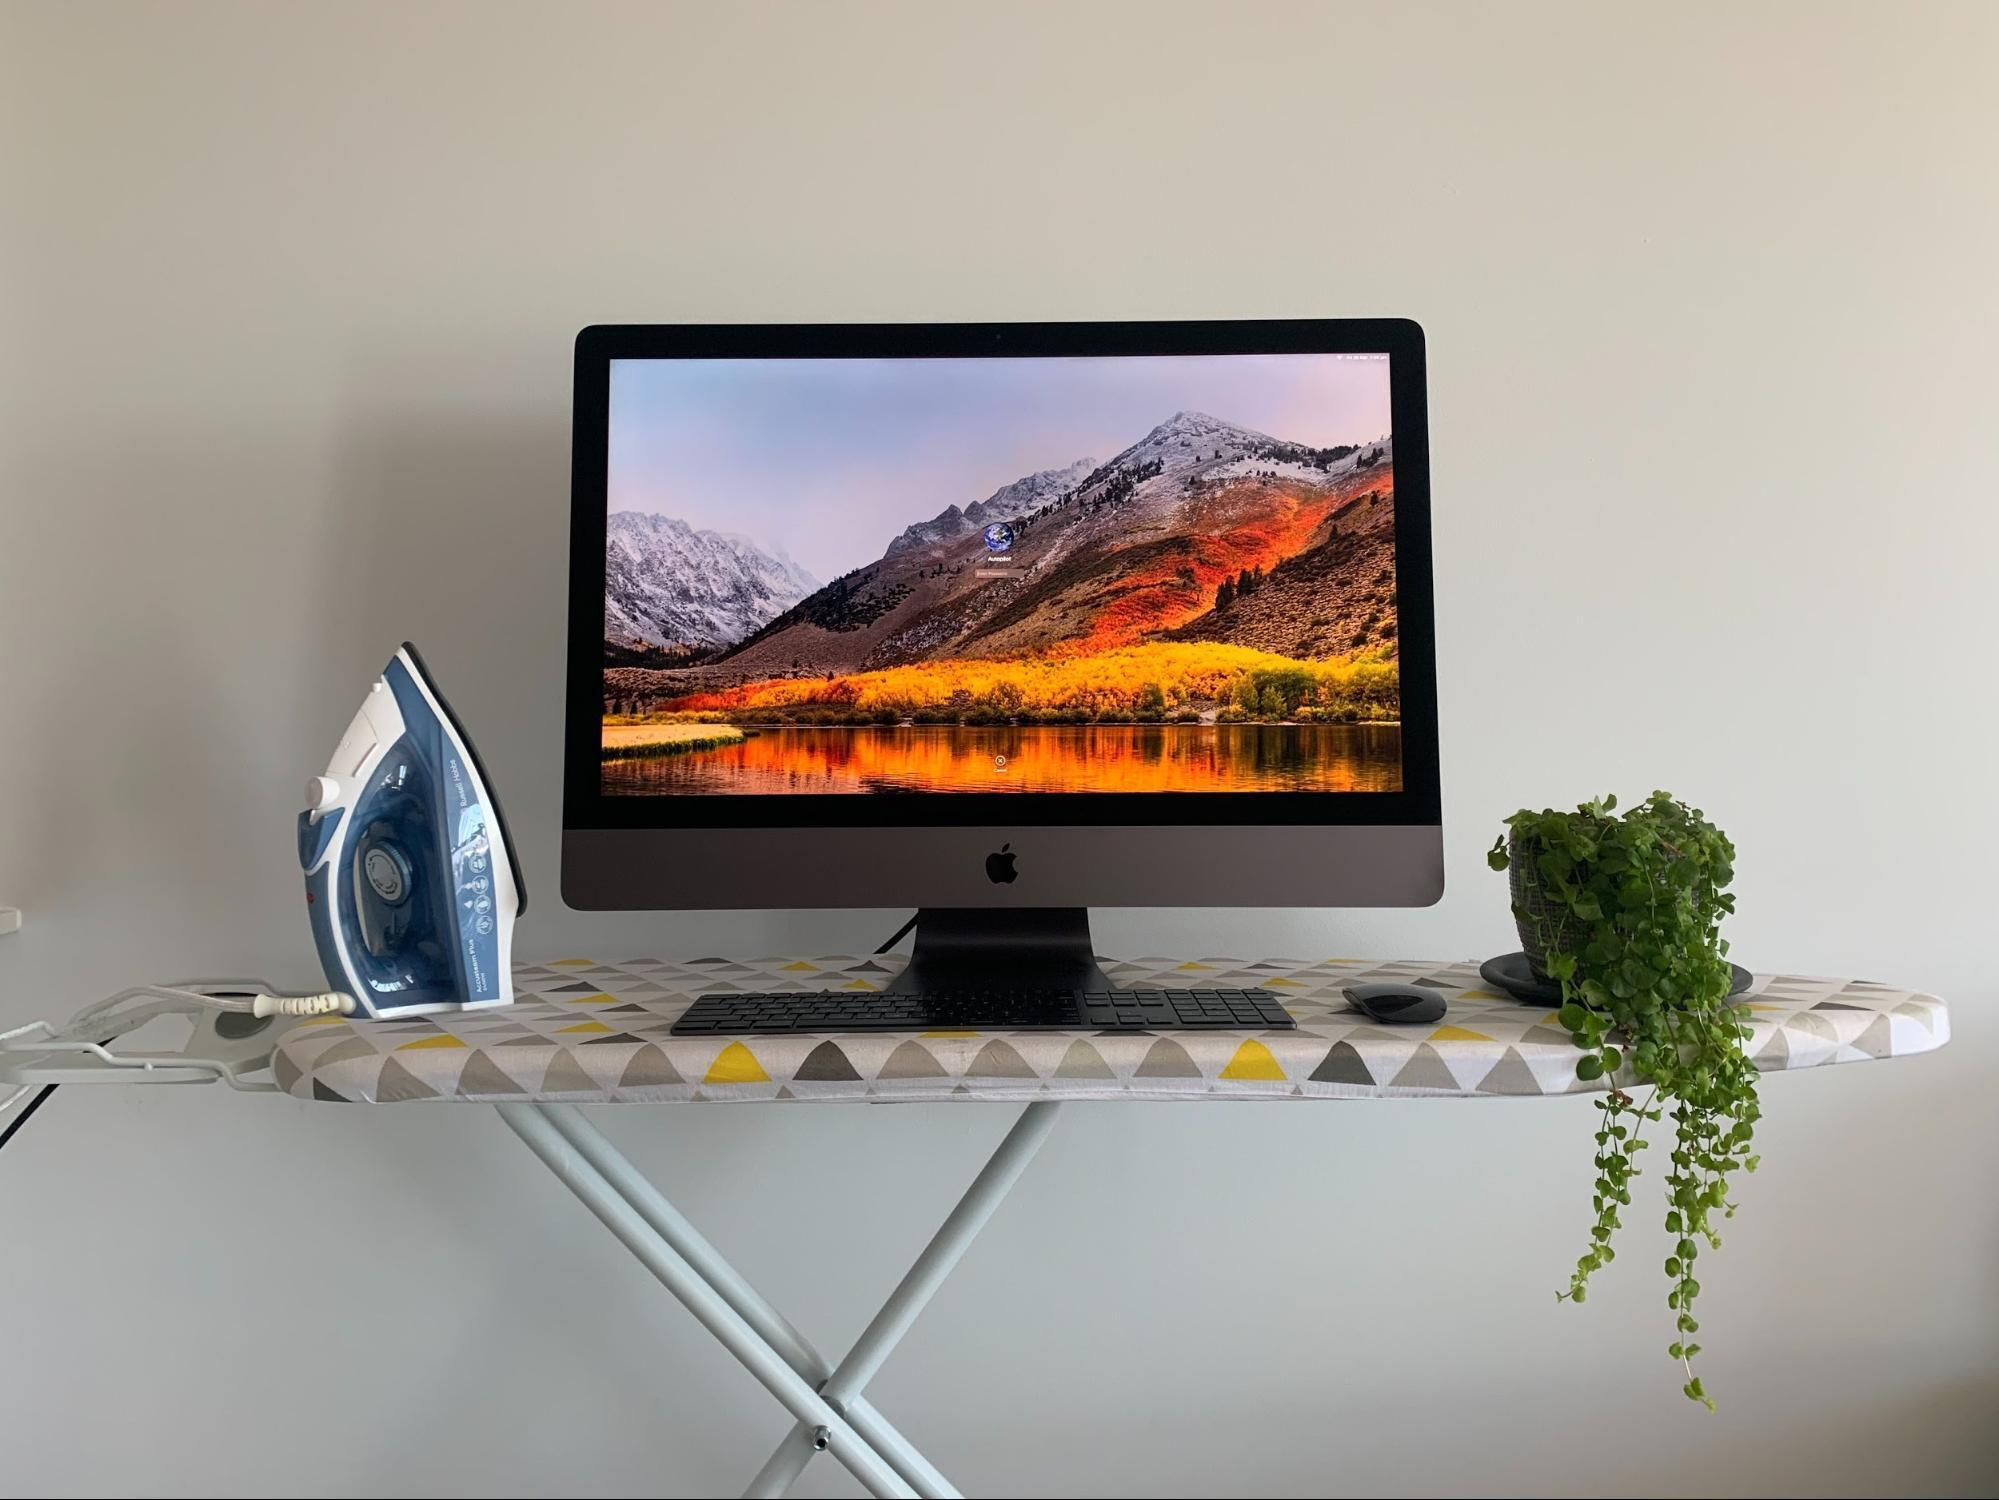 Computer on ironing board with iron and office plant for funny work from home setup